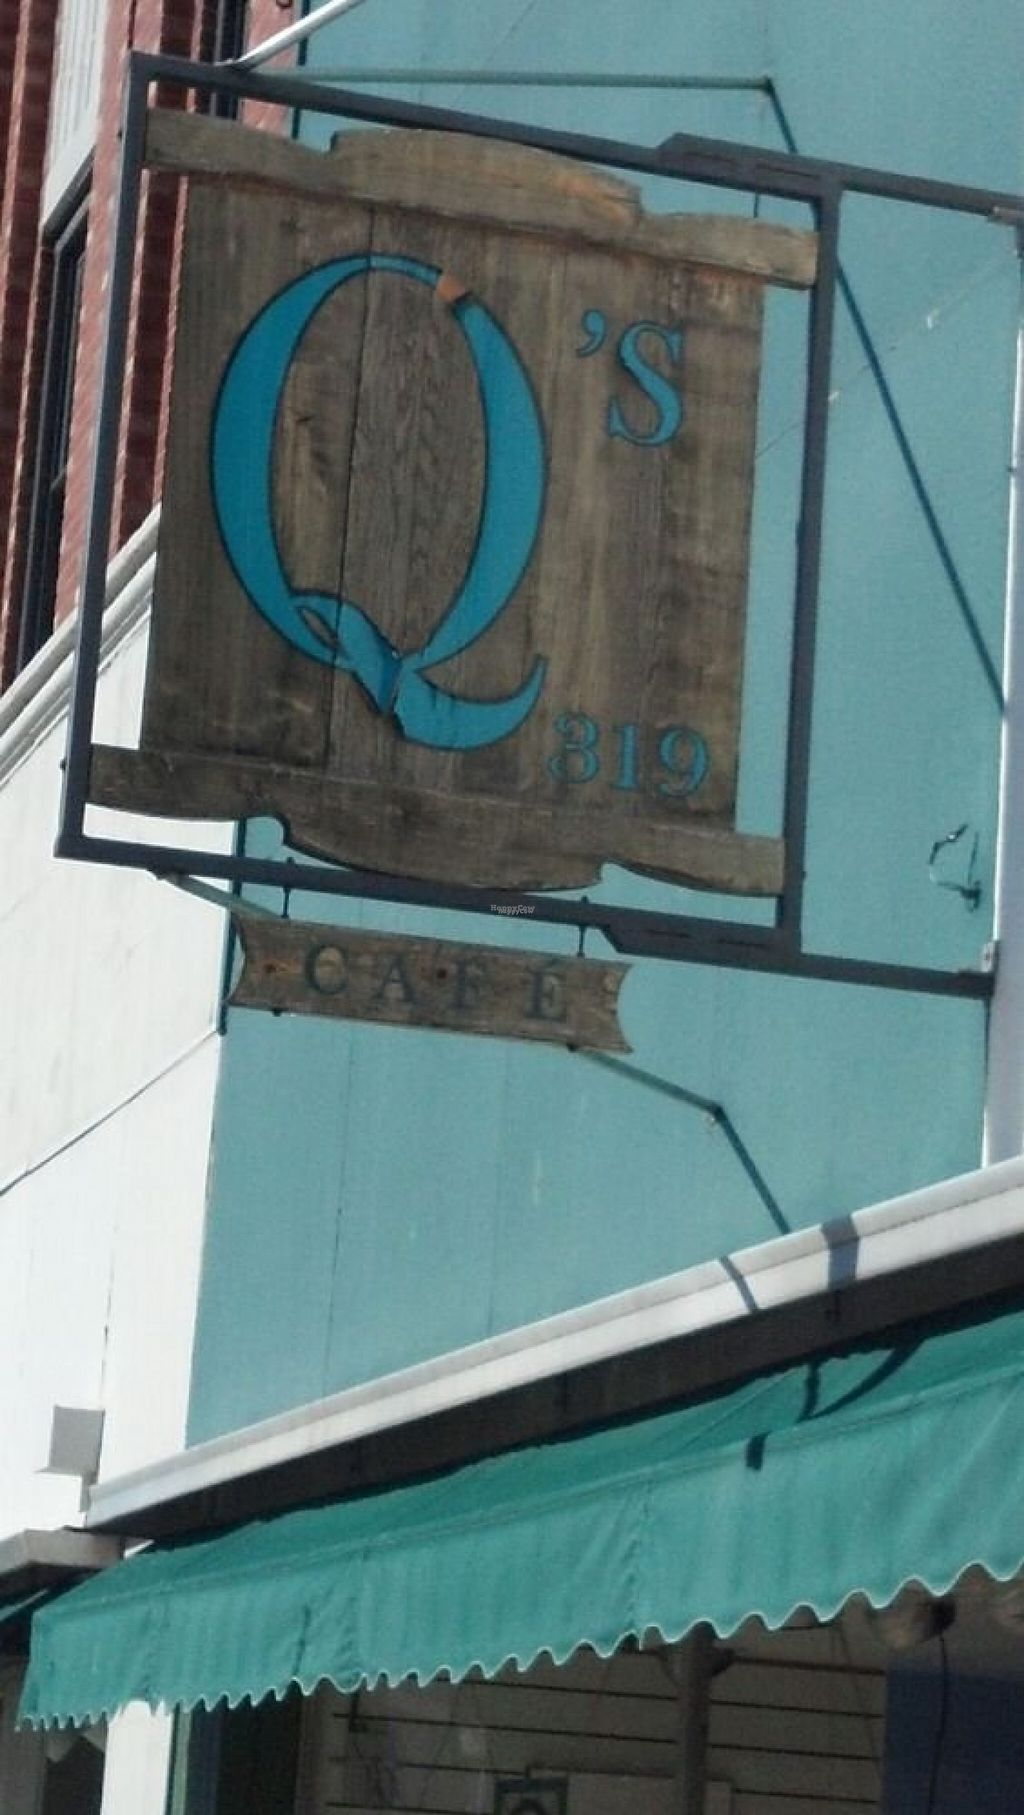 """Photo of CLOSED: Q's Cafe  by <a href=""""/members/profile/Chemd"""">Chemd</a> <br/>Front sign <br/> August 14, 2016  - <a href='/contact/abuse/image/78589/168673'>Report</a>"""